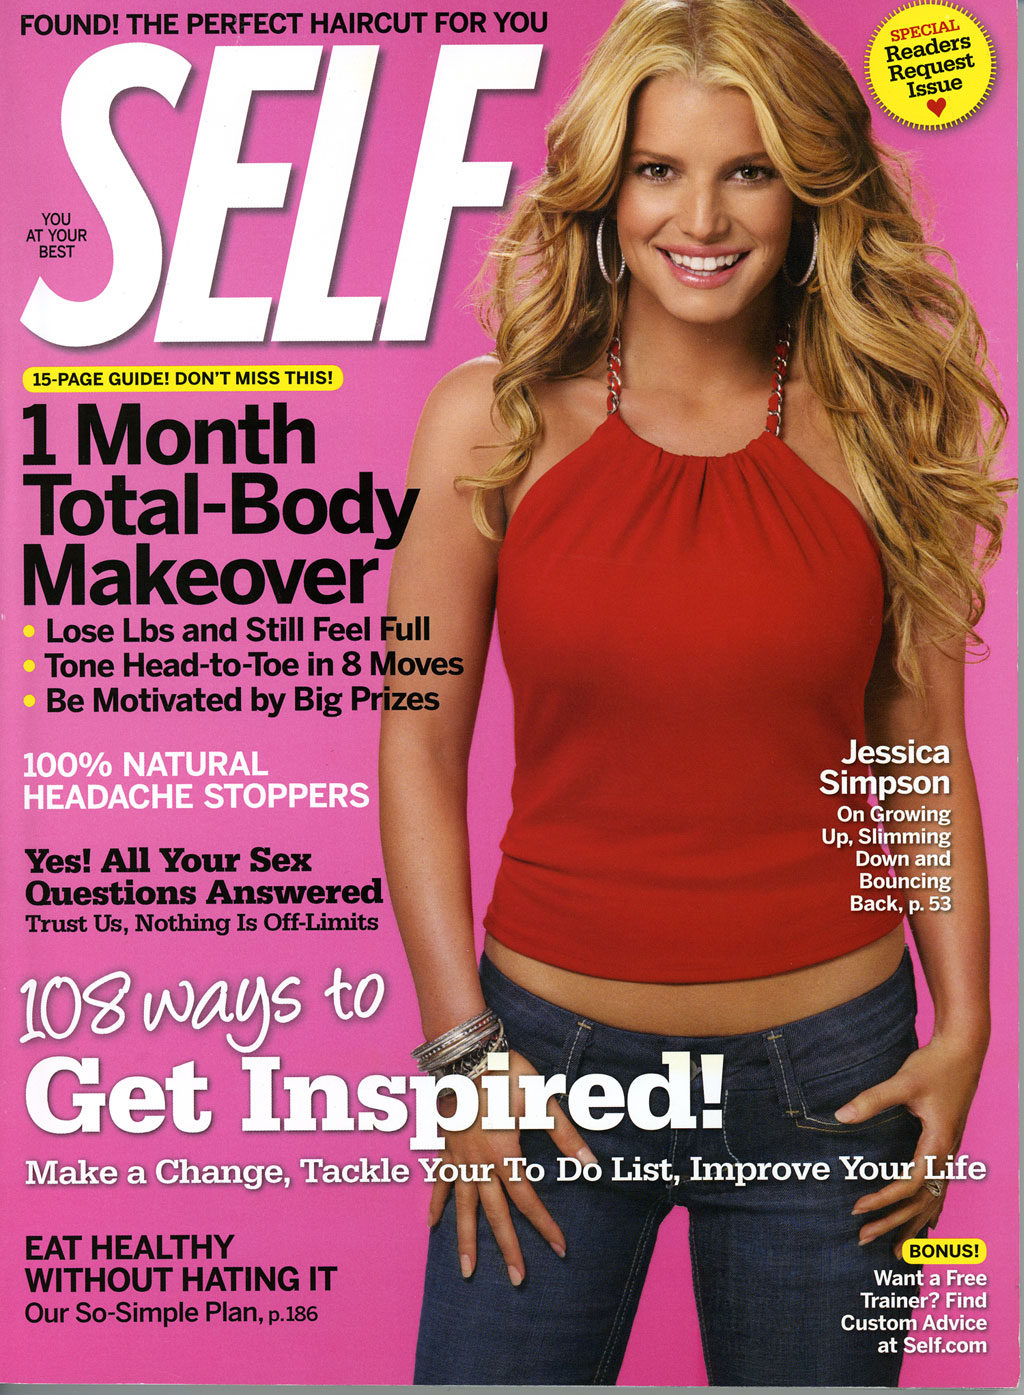 Fordham College Rose Hill Internships  SELF Magazine